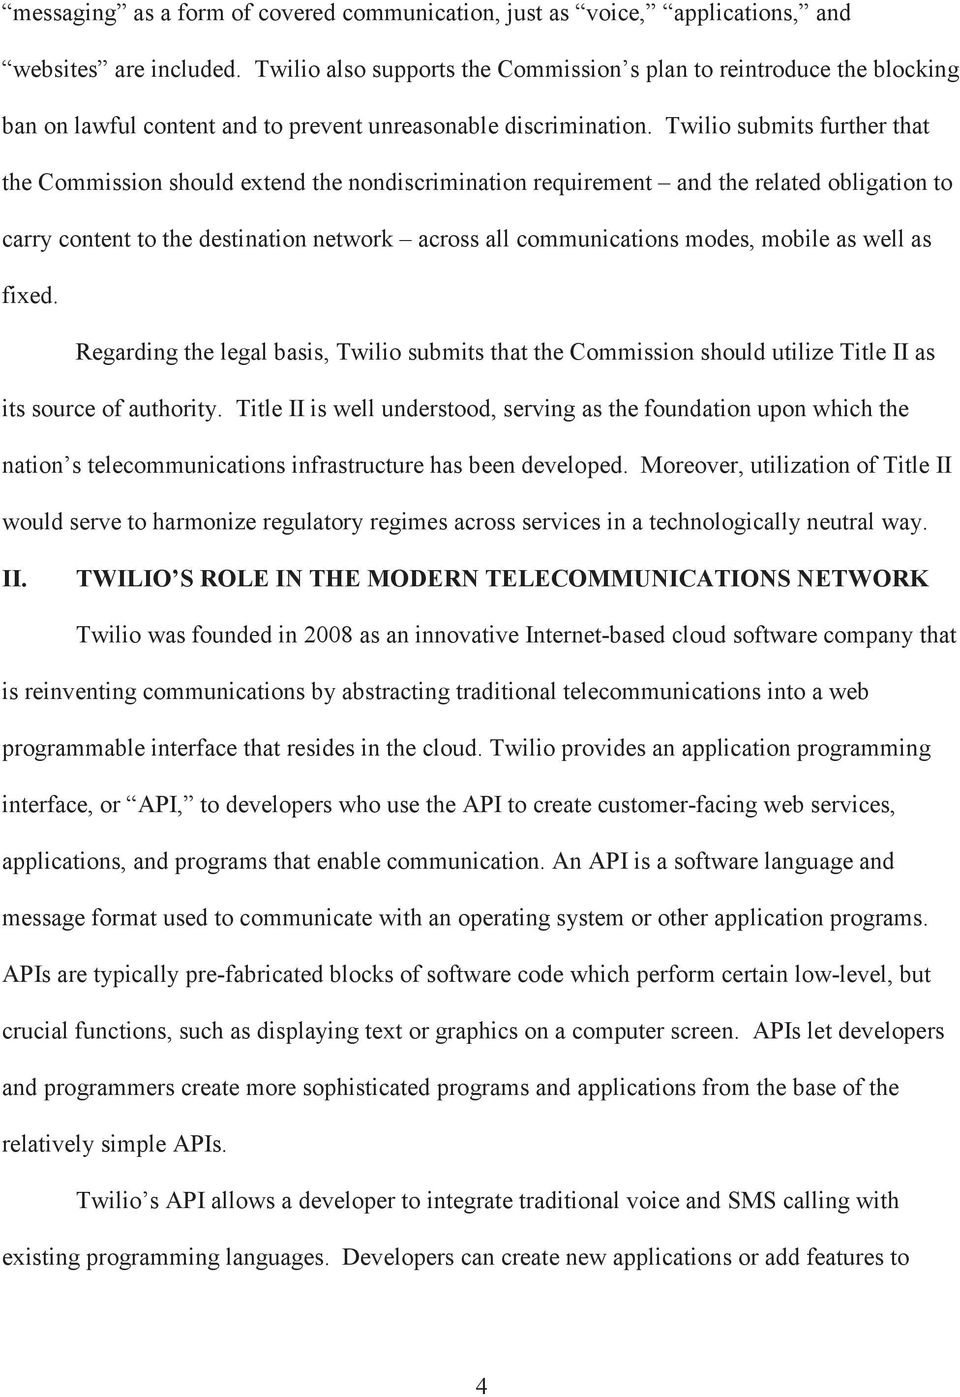 Twilio submits further that the Commission should extend the nondiscrimination requirement and the related obligation to carry content to the destination network across all communications modes,